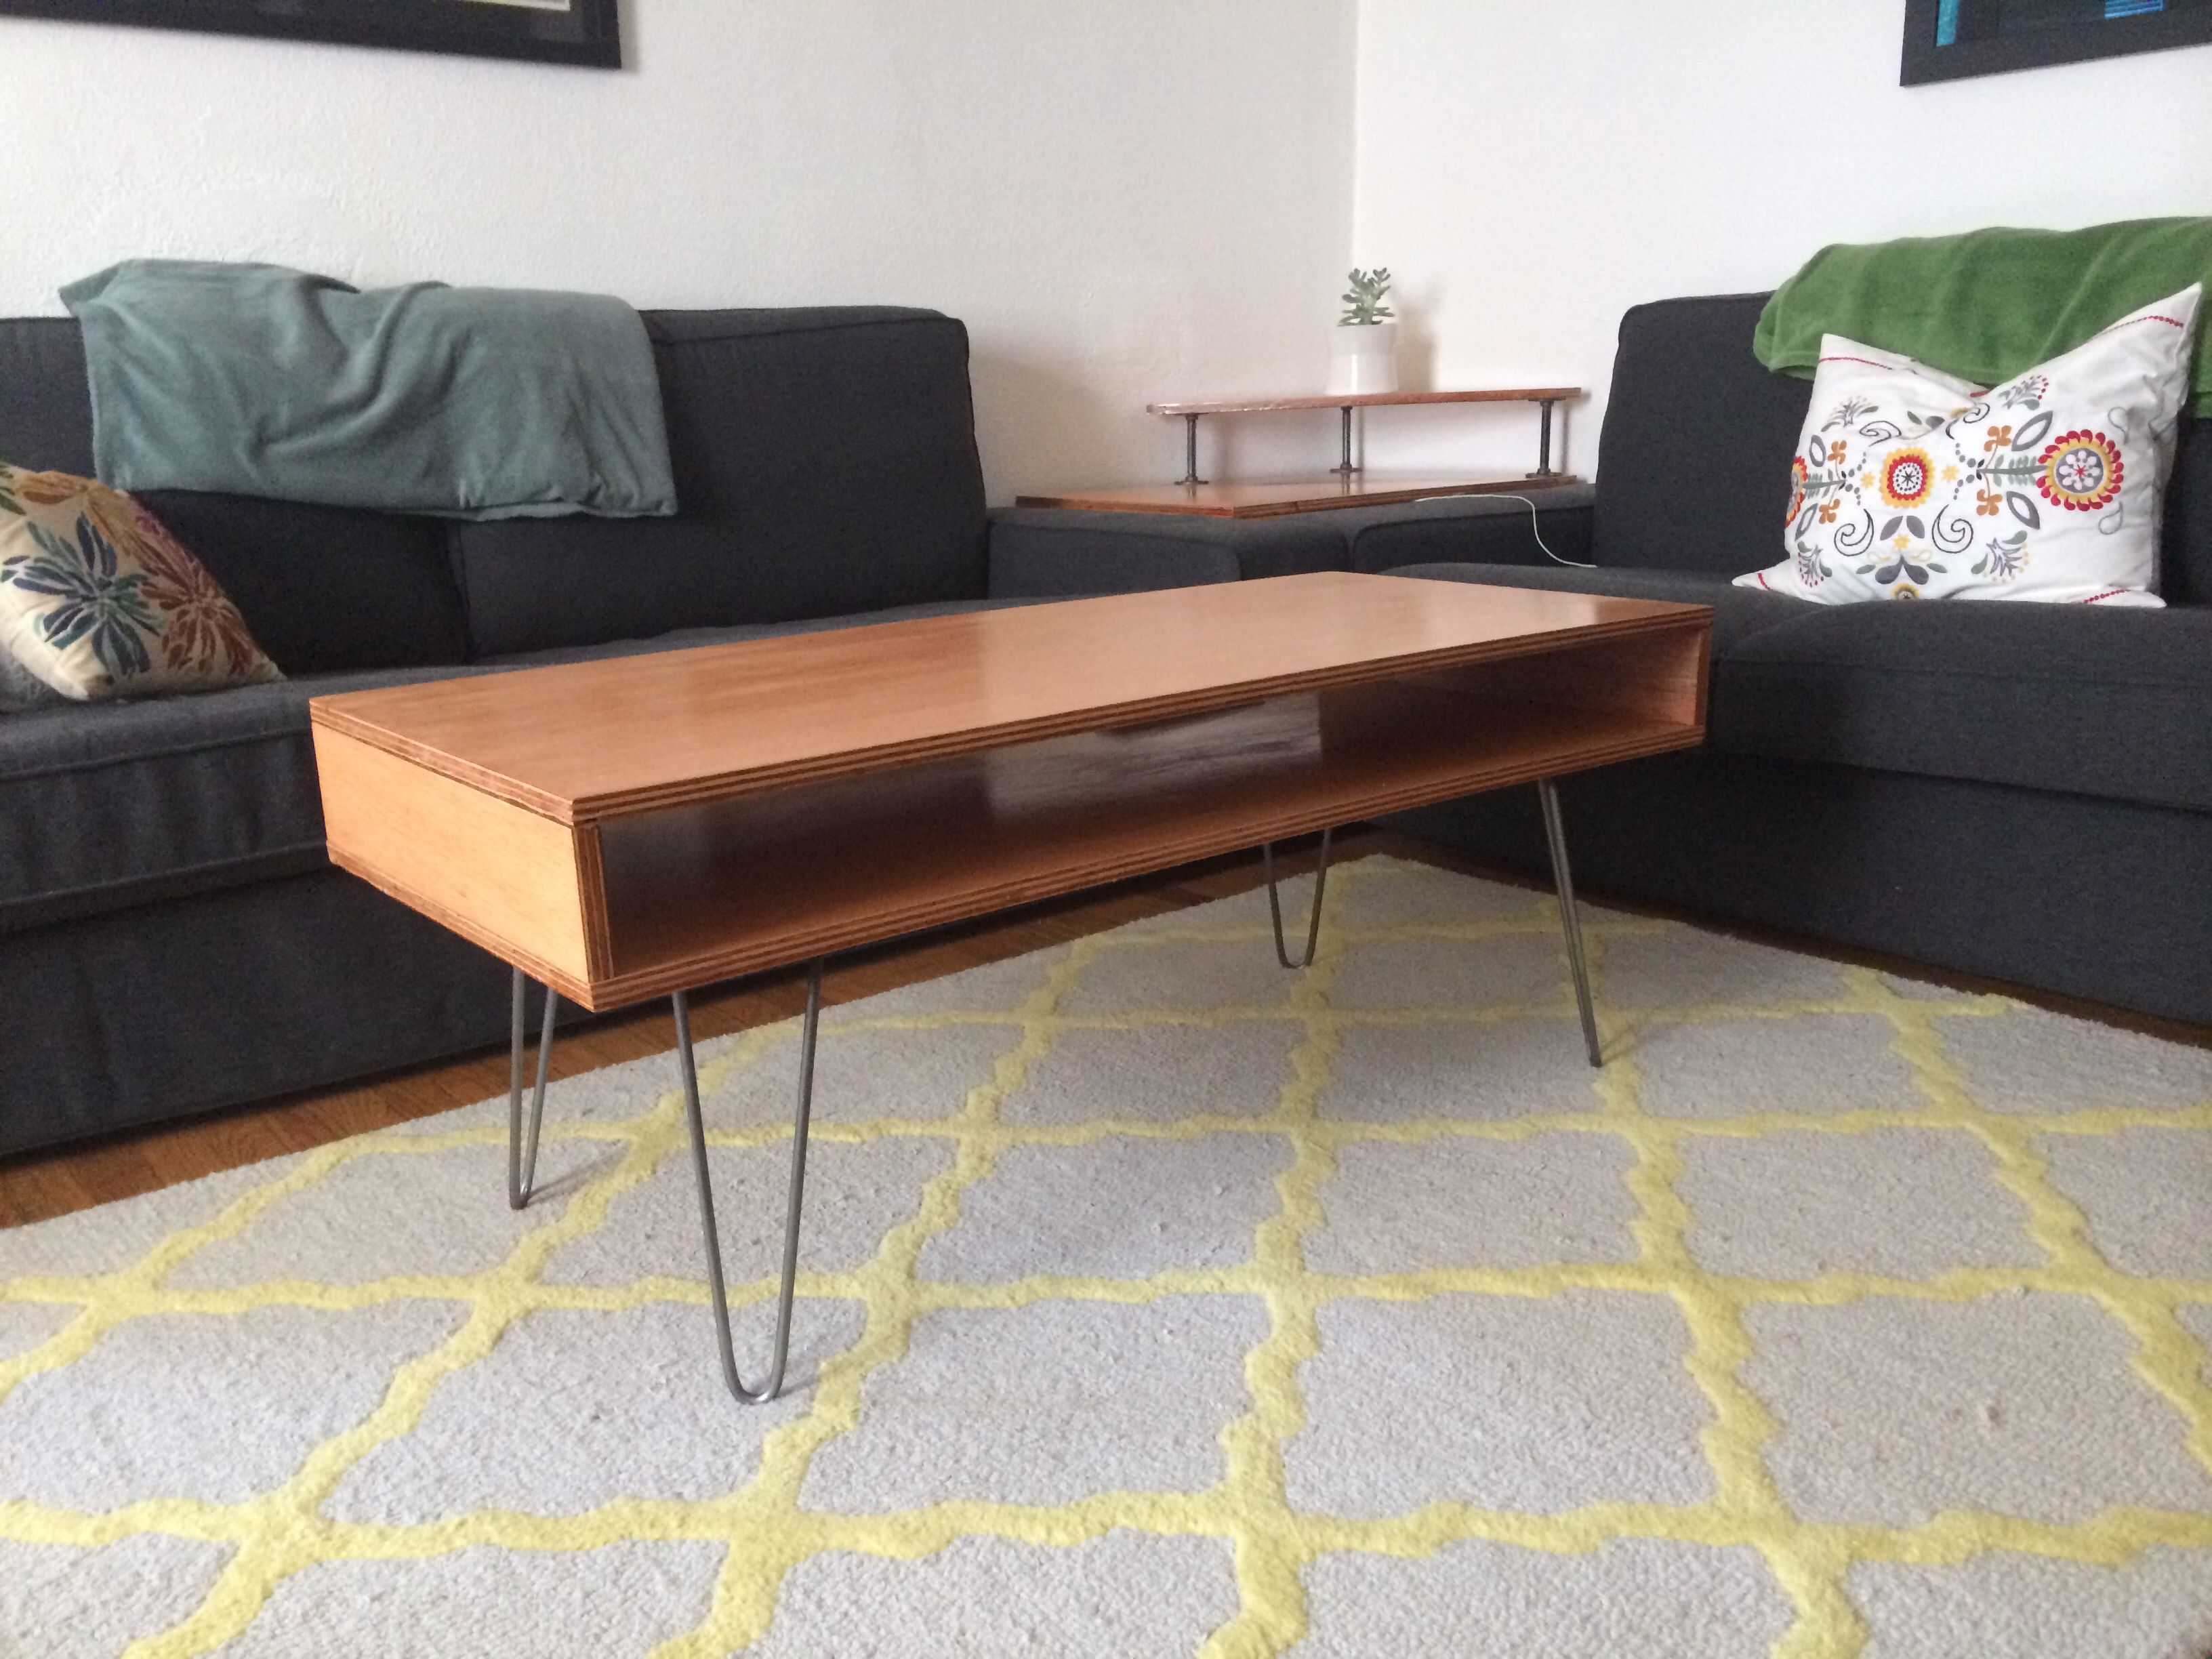 Diy coffee table made from plywood stained and for Plywood coffee table diy